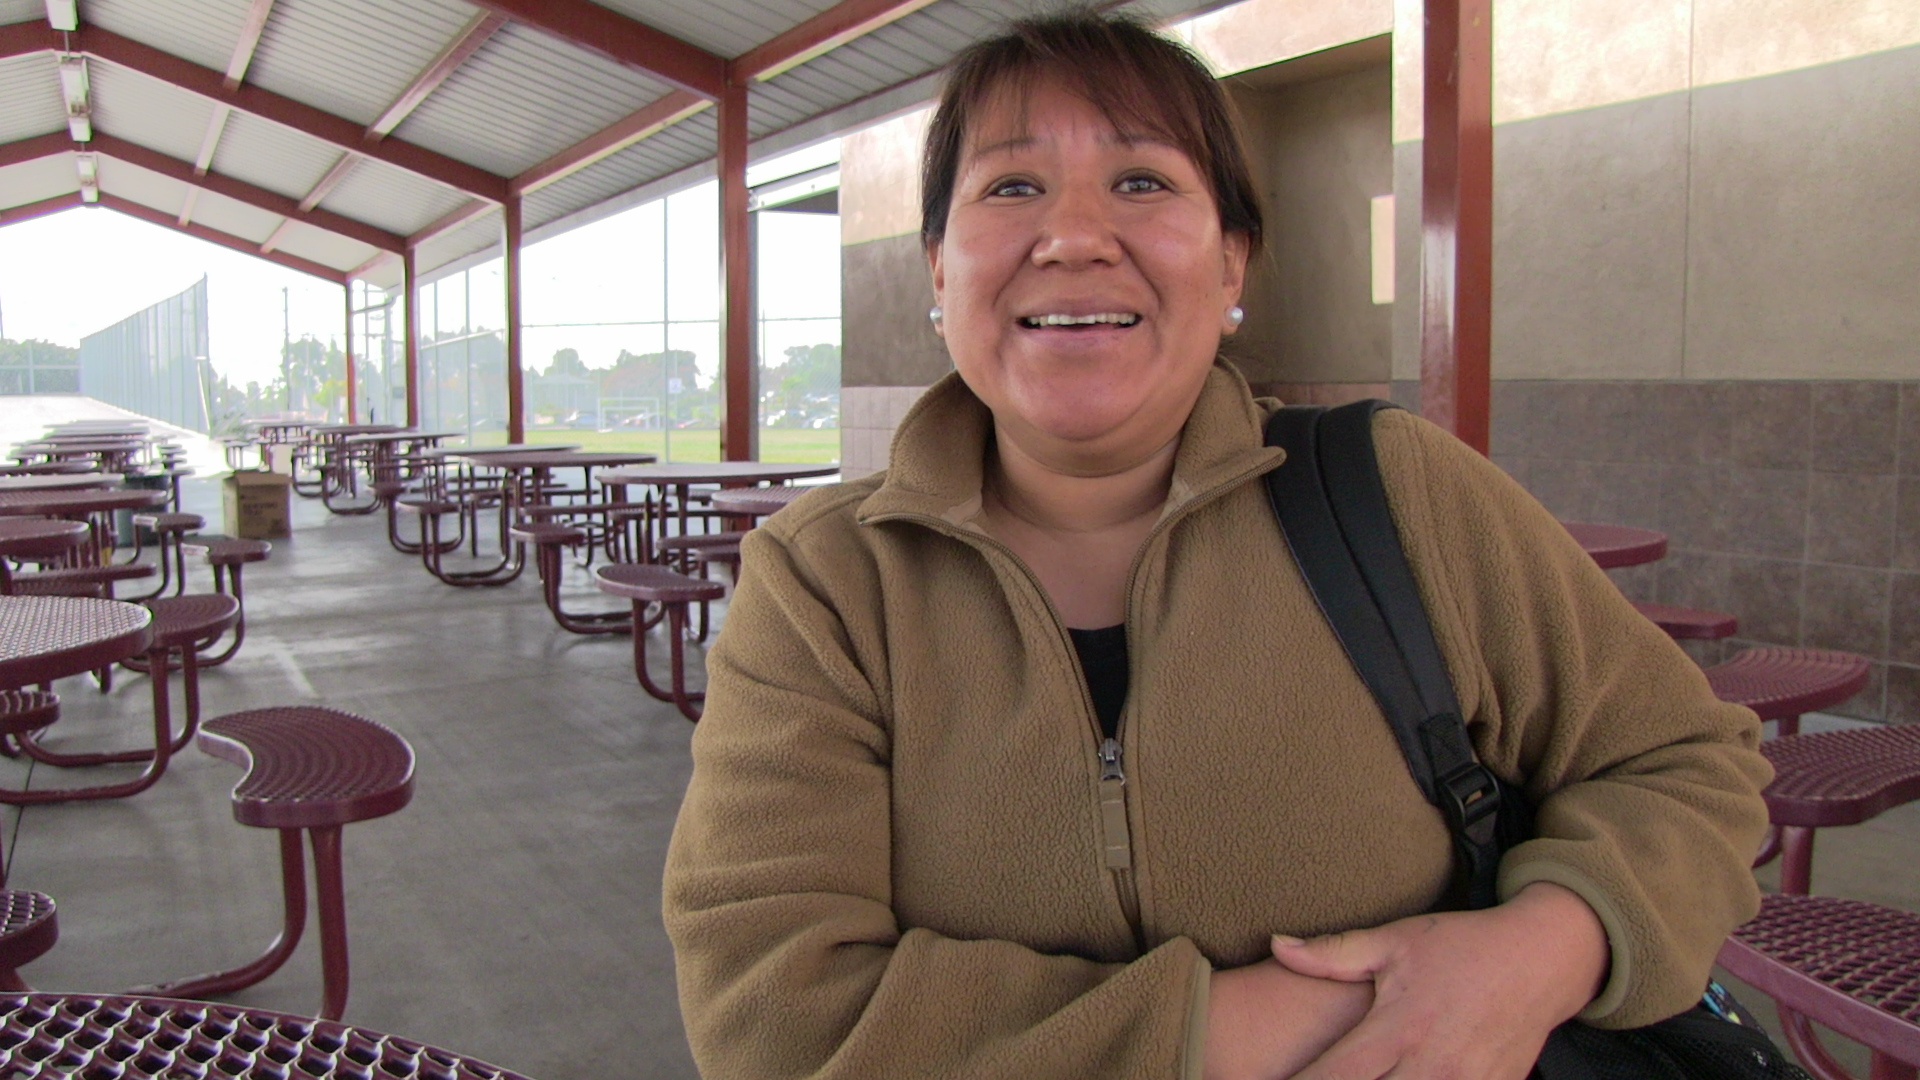 """Luz Vidal, who leads the school's parents' organization, has two children at Cherokee Point. """"The school keeps us very well informed, and is always willing to have us here,"""" she says. In other schools, """"some principals will sit in their office and you never see them. But Principal Higa is always out; he's very involved."""""""